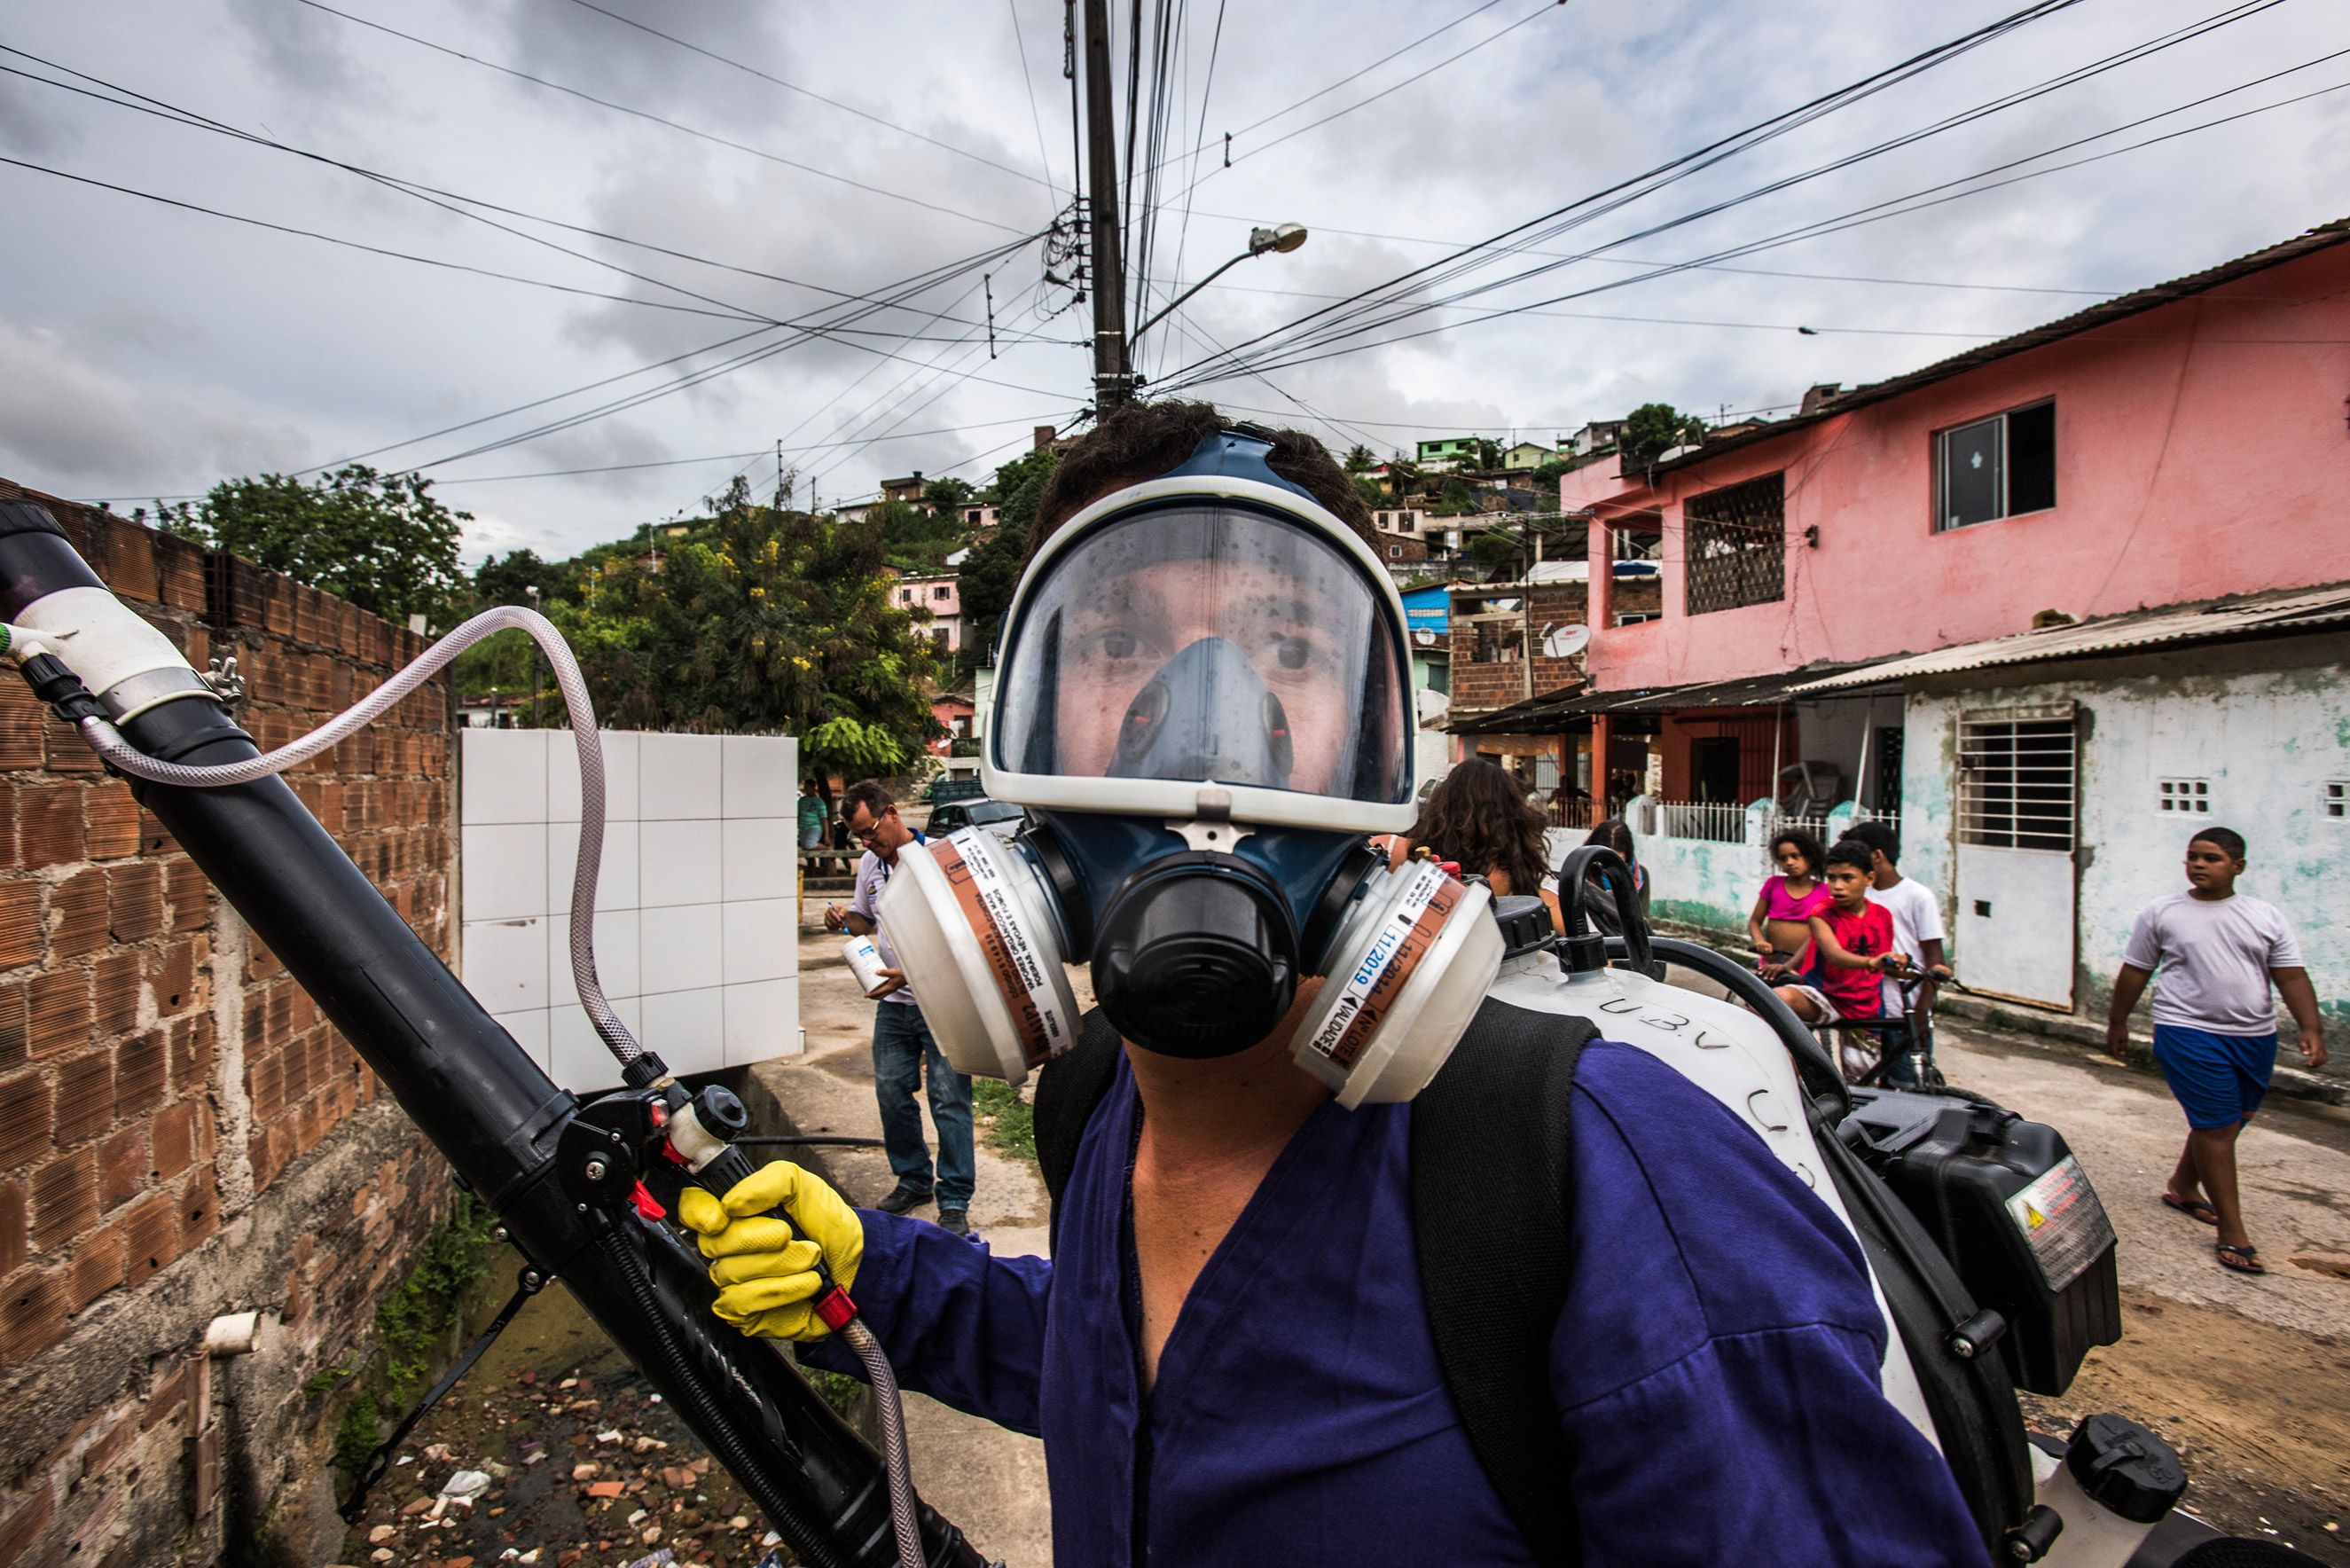 A health worker sprays insecticide in the Nova Descoberta neighborhood of Recife, Brazil, Feb. 1, 2016. Recife became Ground Zero for the outbreak of Zika cases.